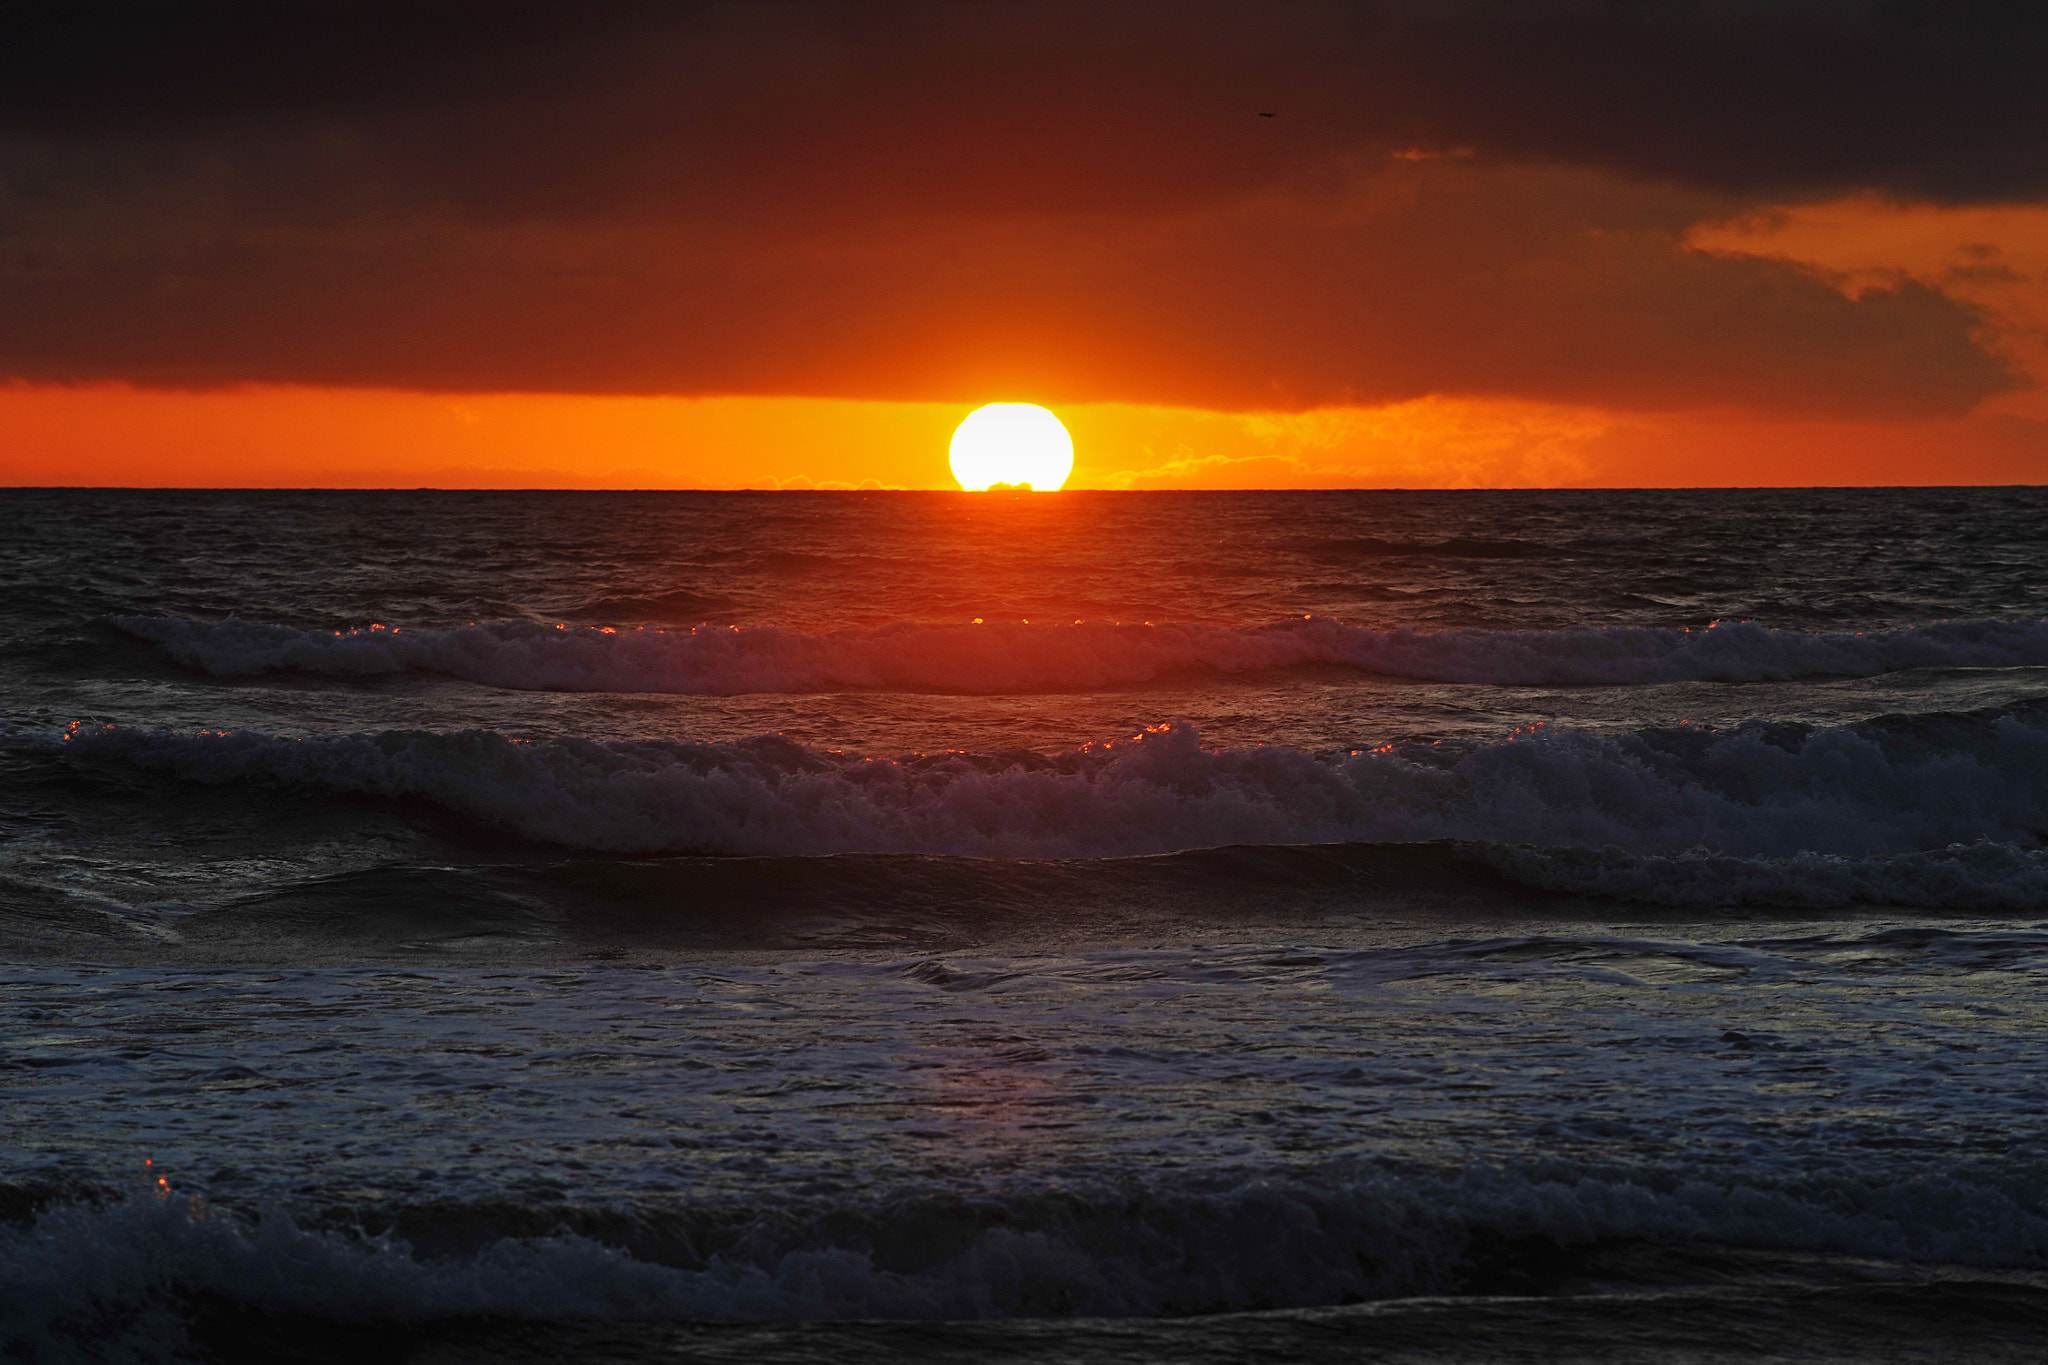 Photograph The Sun Sets in Oceanside - April 1, 2013 by Rich Cruse on 500px